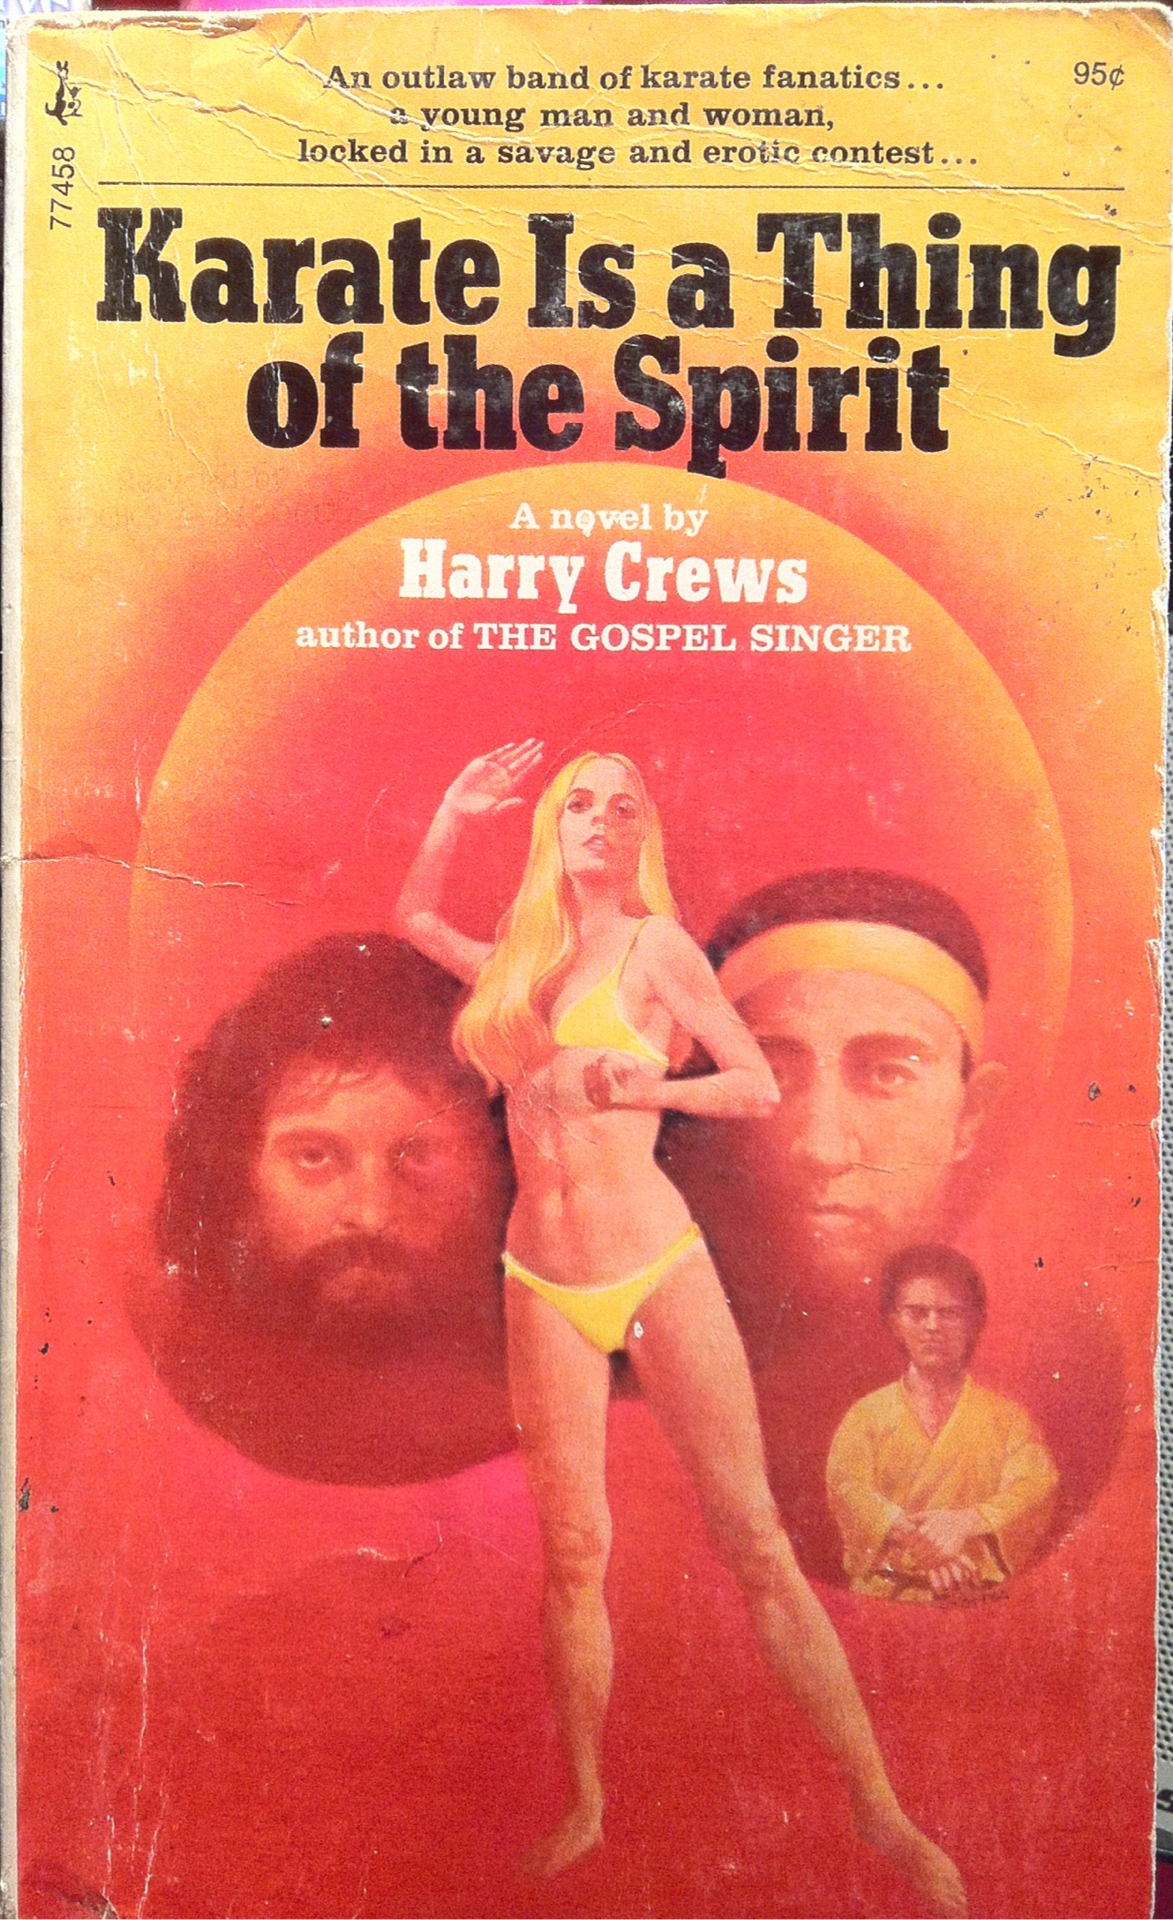 Not sure why Rafi from THE LEAGUE is on this book cover.